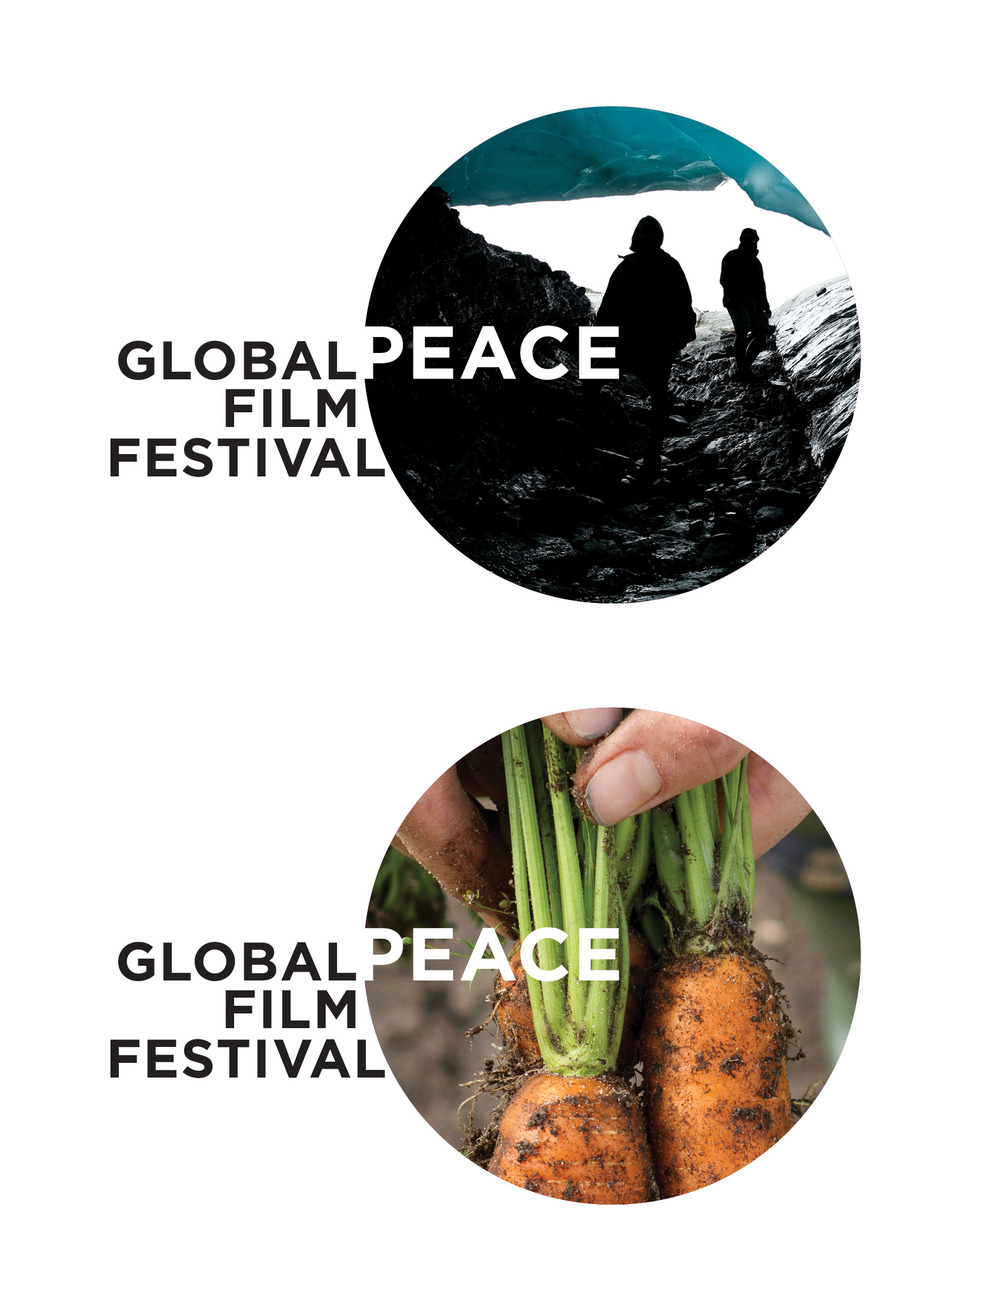 Global Peace Film Festival Rebrand